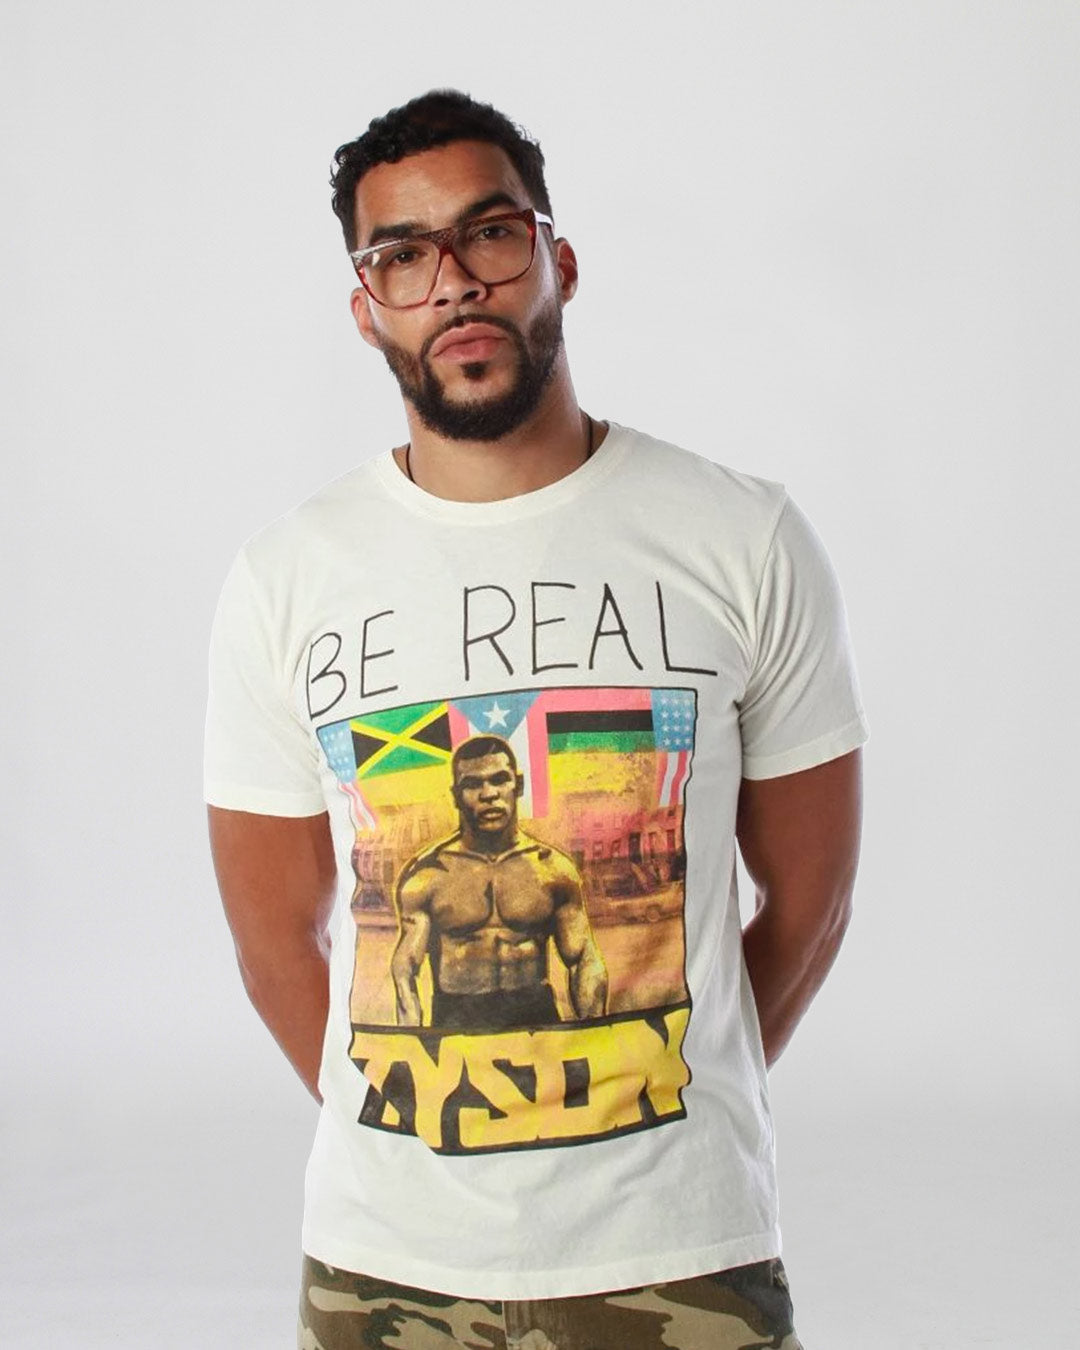 Tyson 'Be Real' Portrait Tee